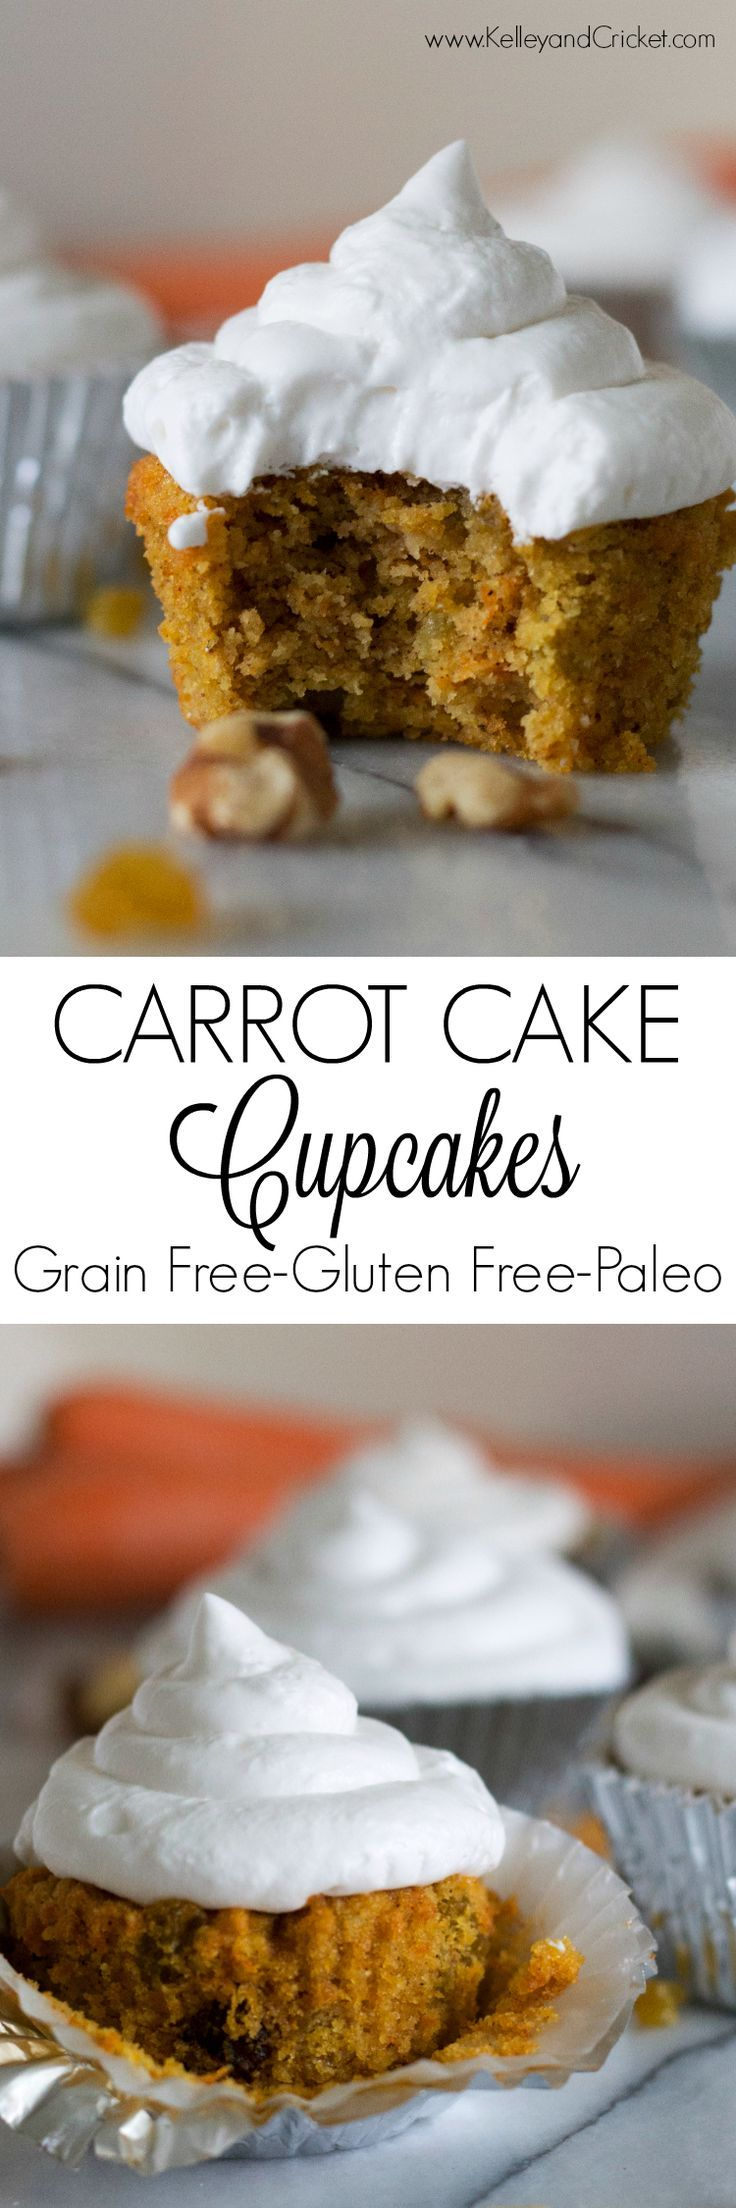 These moist and delicate Carrot Cake Cupcakes, topped with light and fluffy cream cheese whip, have a few surprisingingredients that make them extra special and extra irresistible! They make the perfect secretly healthy sweet treat, and are grain free, gluten free, and paleo.